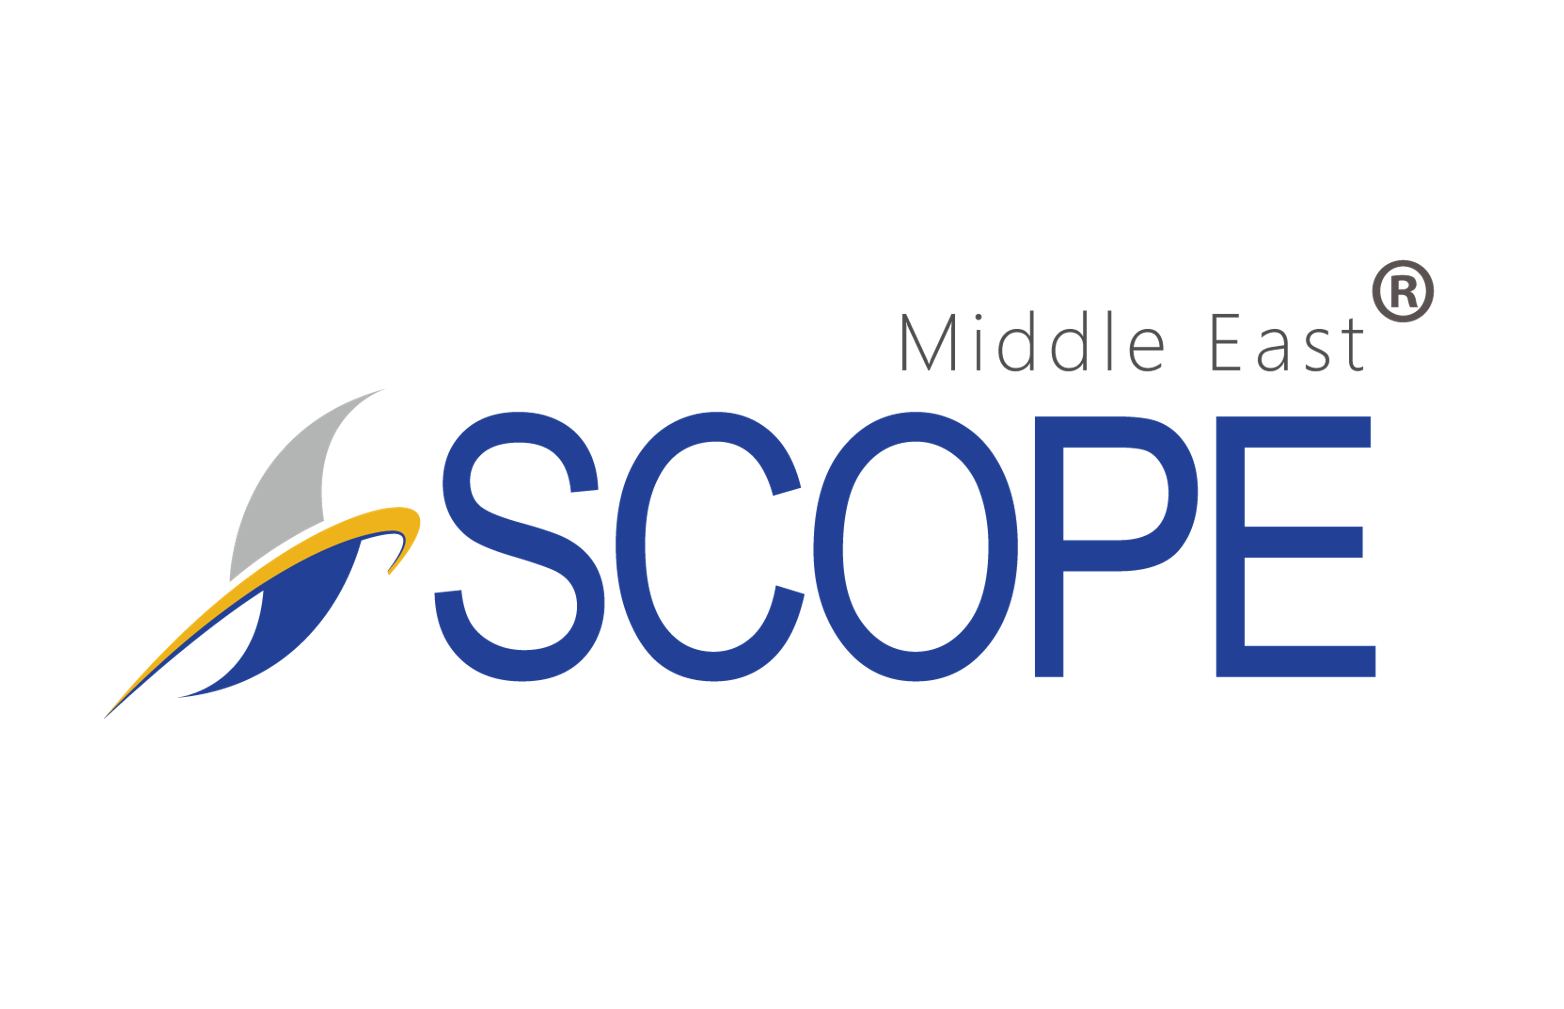 SCOPE Middle East